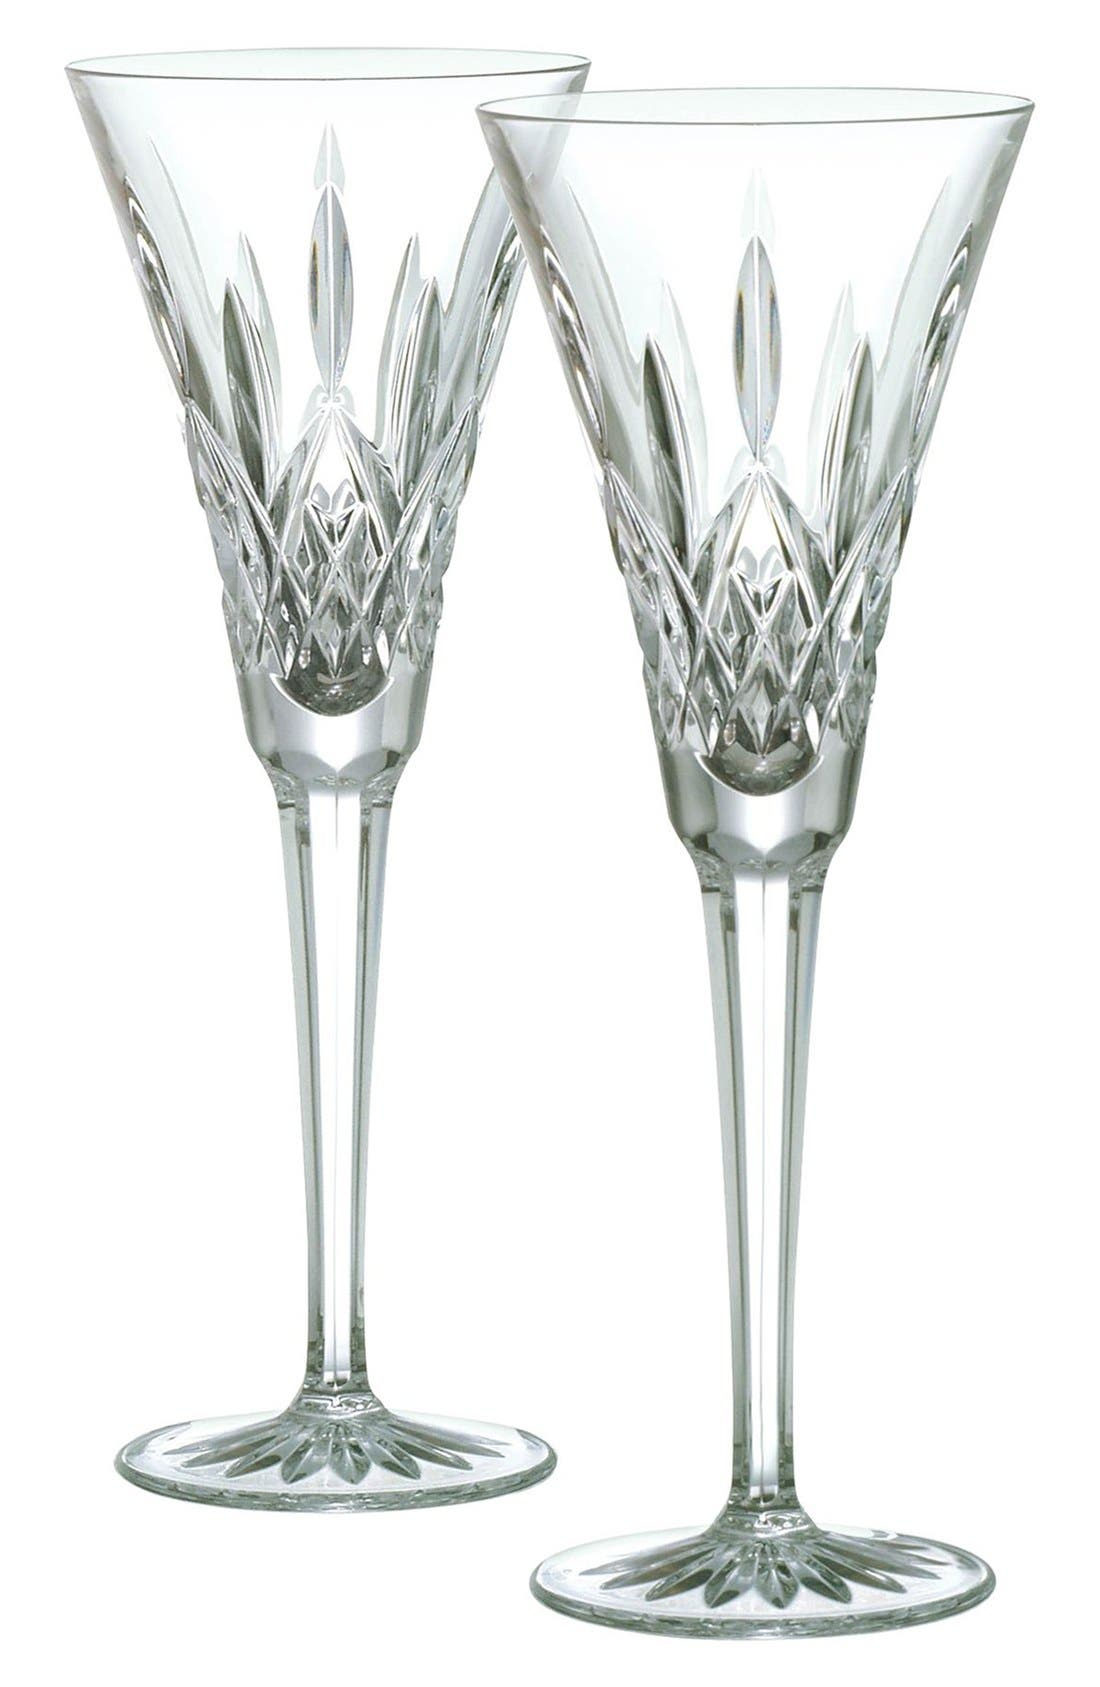 Main Image - Waterford 'Lismore' Lead Crystal Champagne Flutes (Set of 2)